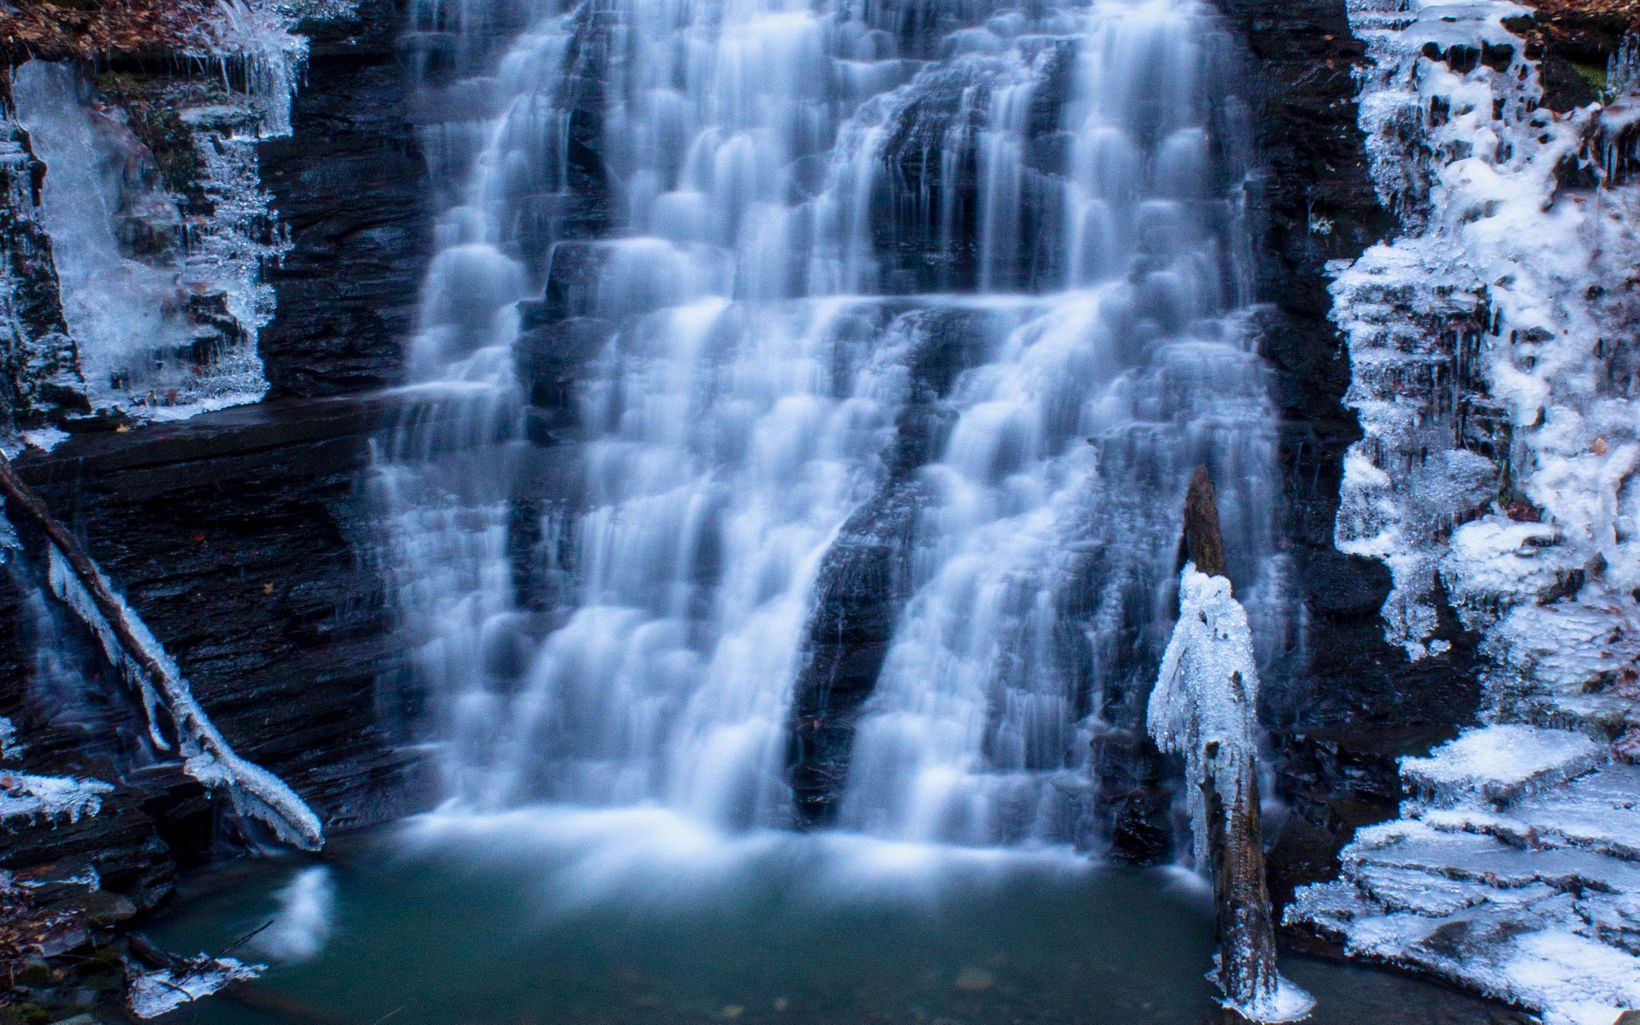 Waterfall with frozen ice on surrounding rocks.